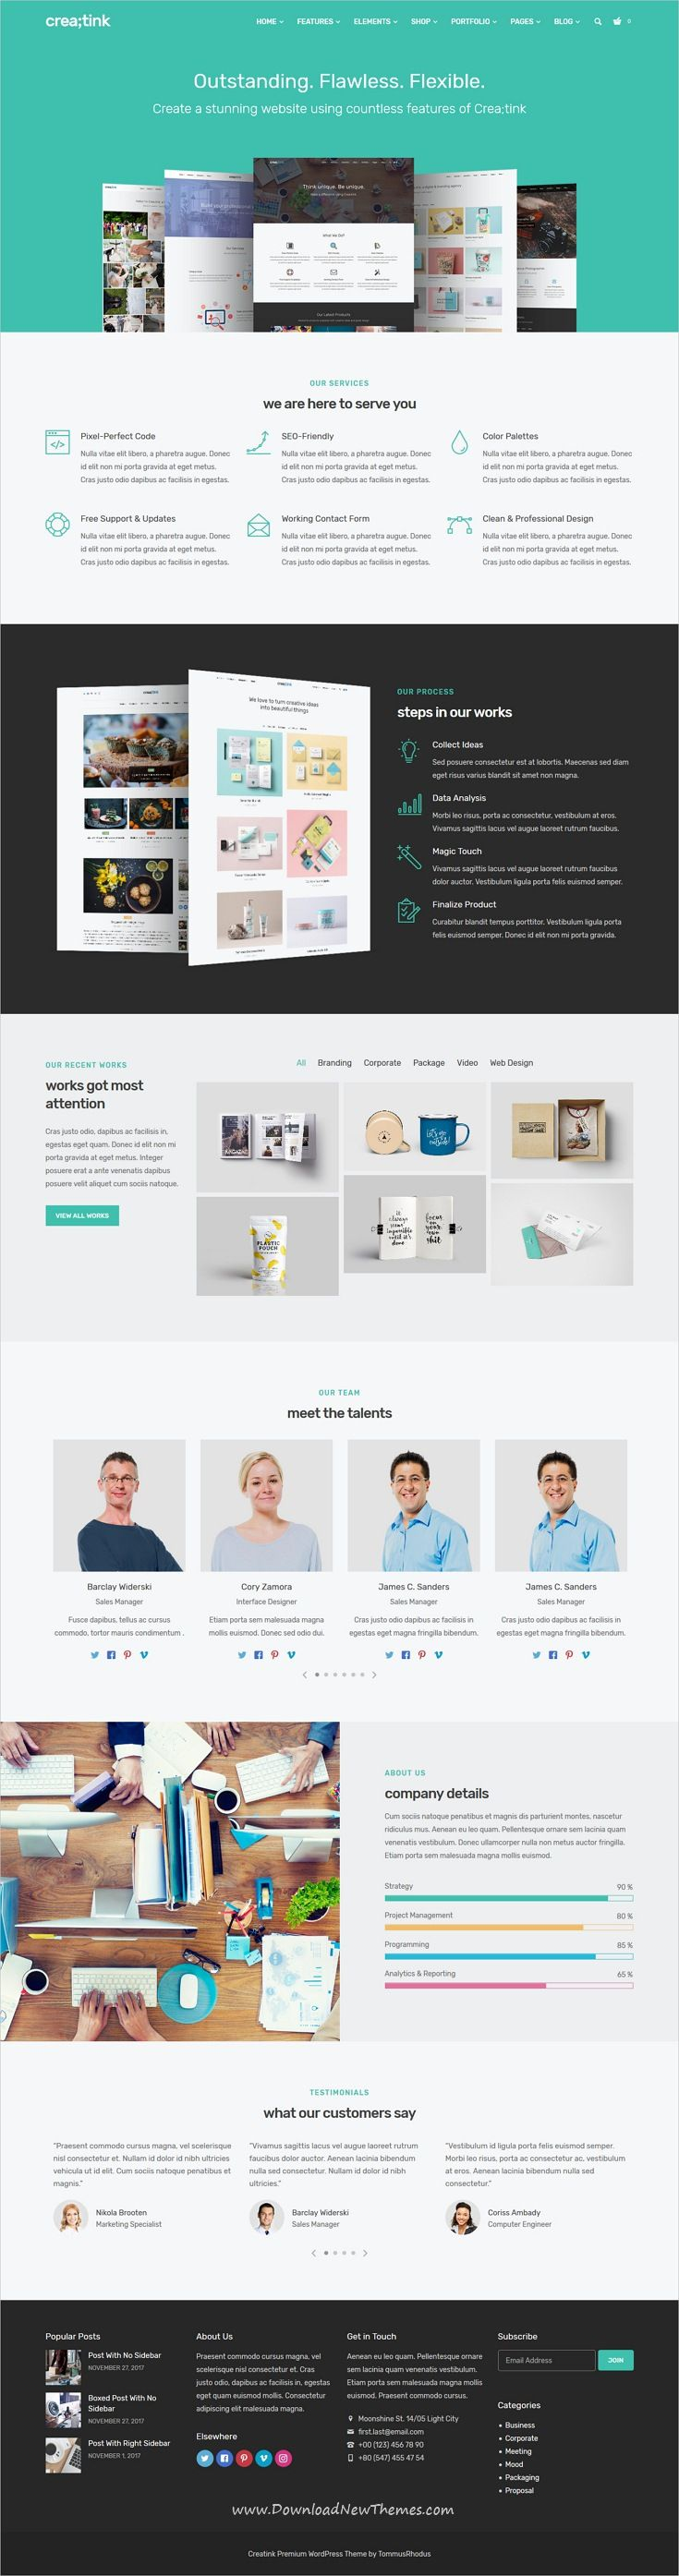 Creatink is clean and modern design 40+ responsive multipurpose WordPress #theme for your #corporate, agency portfolio, photography, personal blog or any other purpose #website to live preview & download click on image or Visit